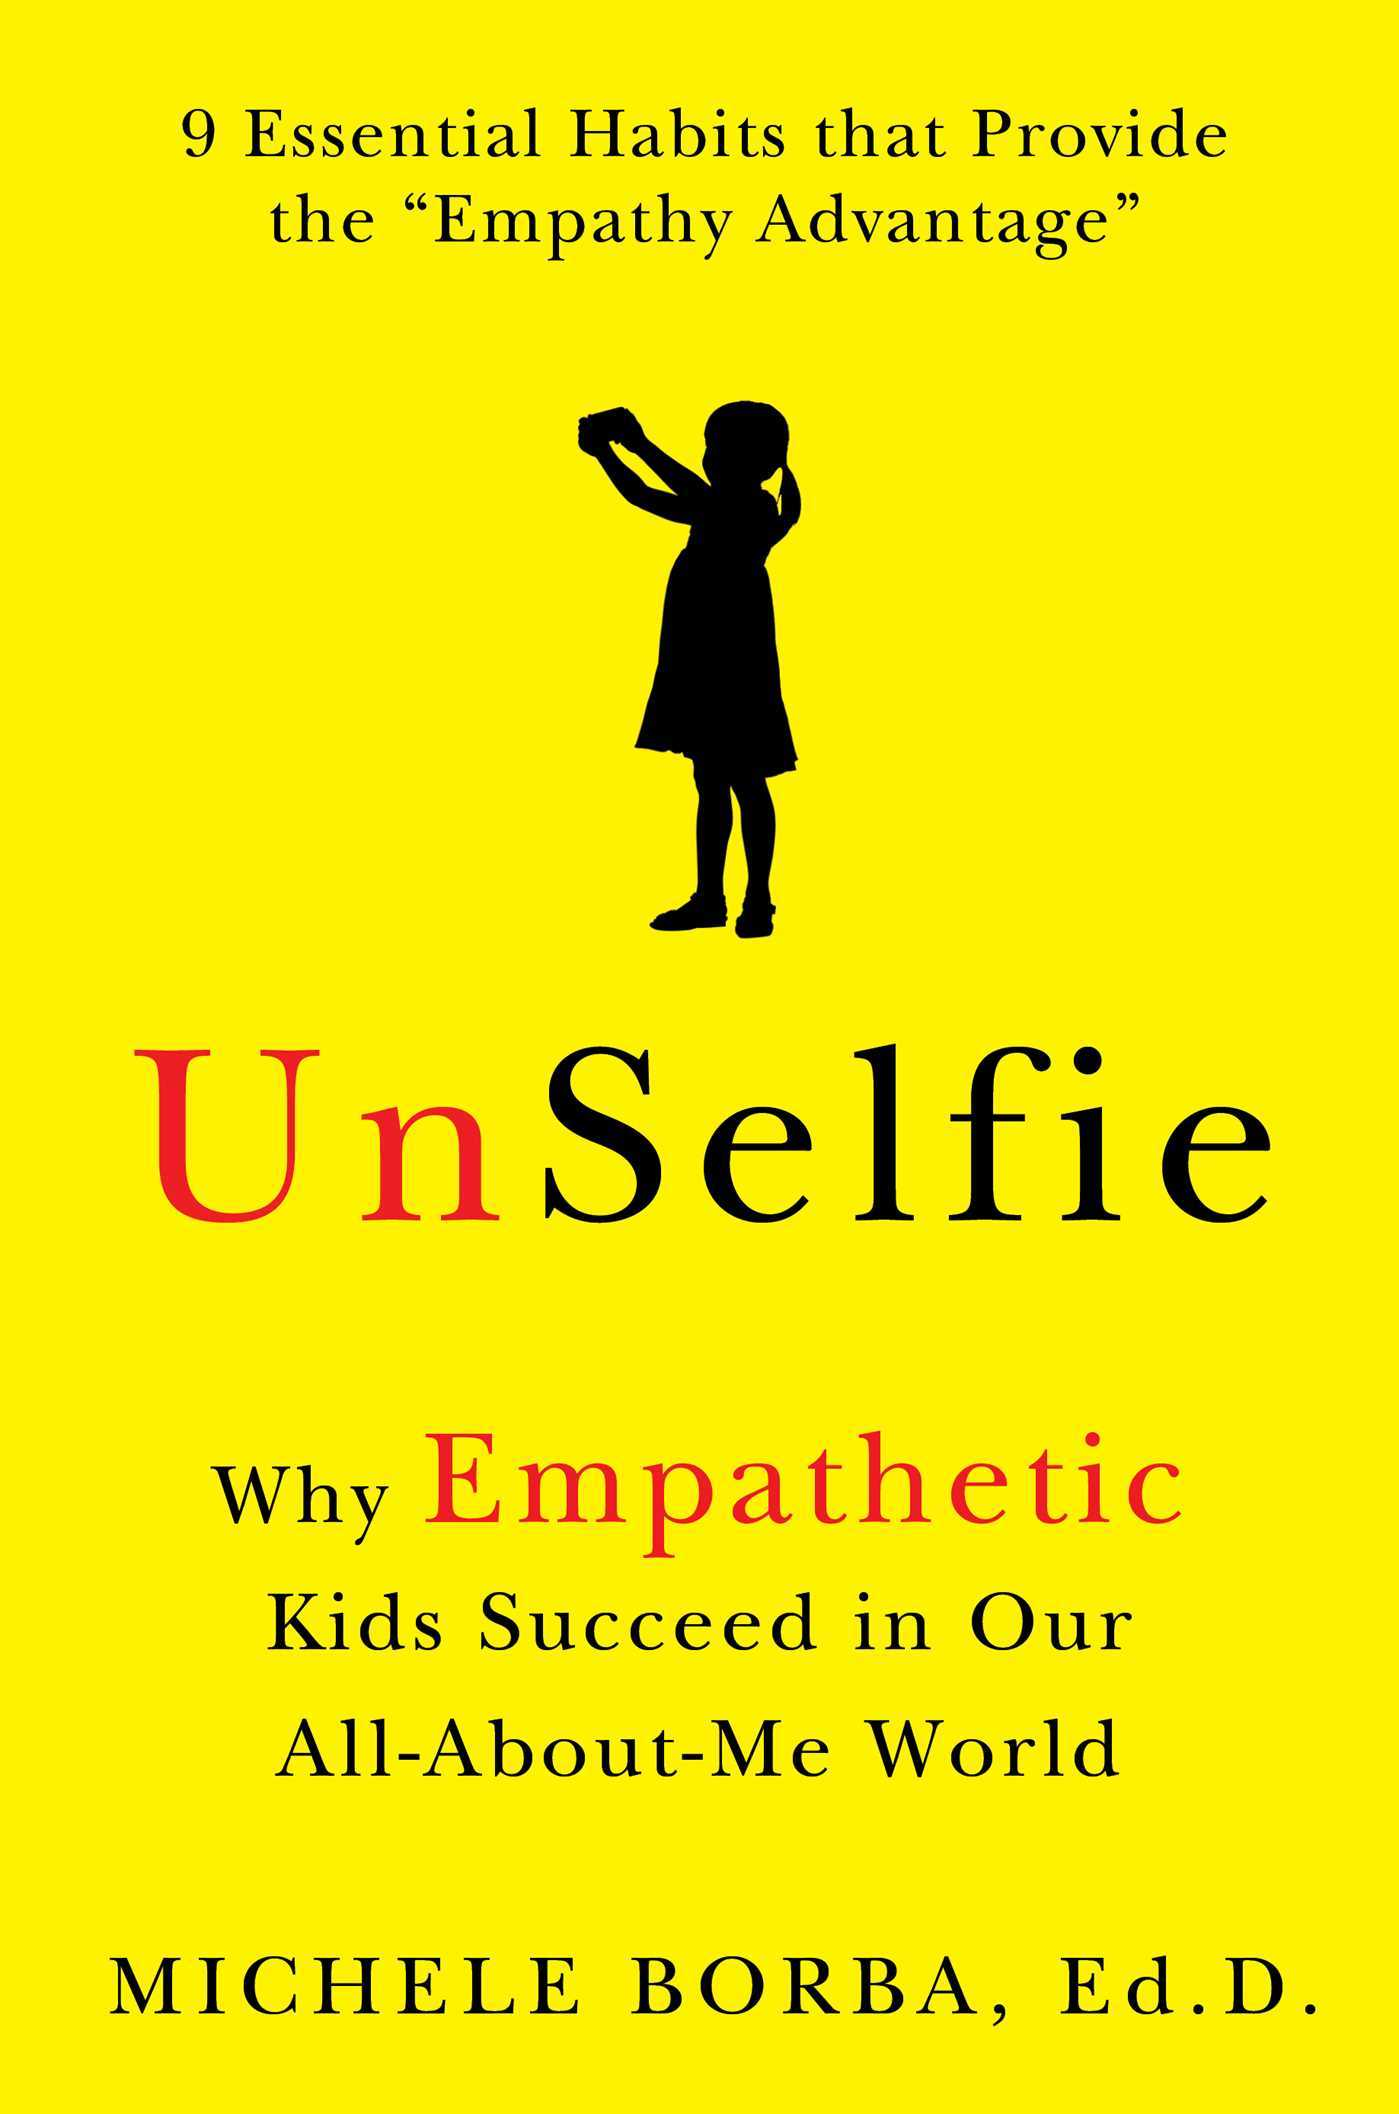 UnSelfie- Why Empathetic Kids Succeed